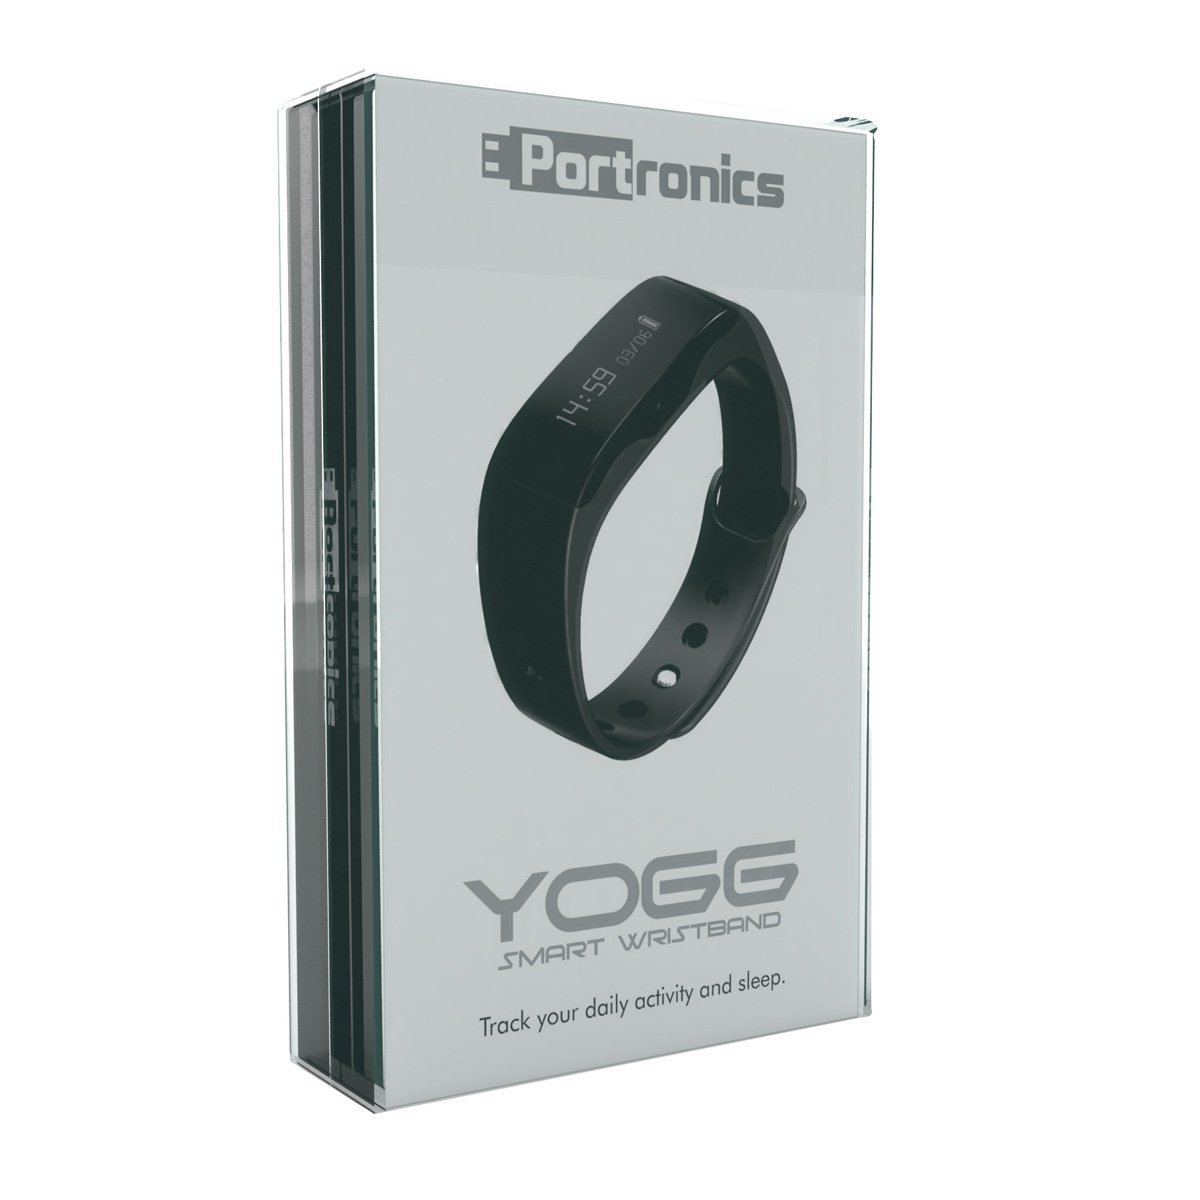 Portronics Yogg Smart Wrist Band